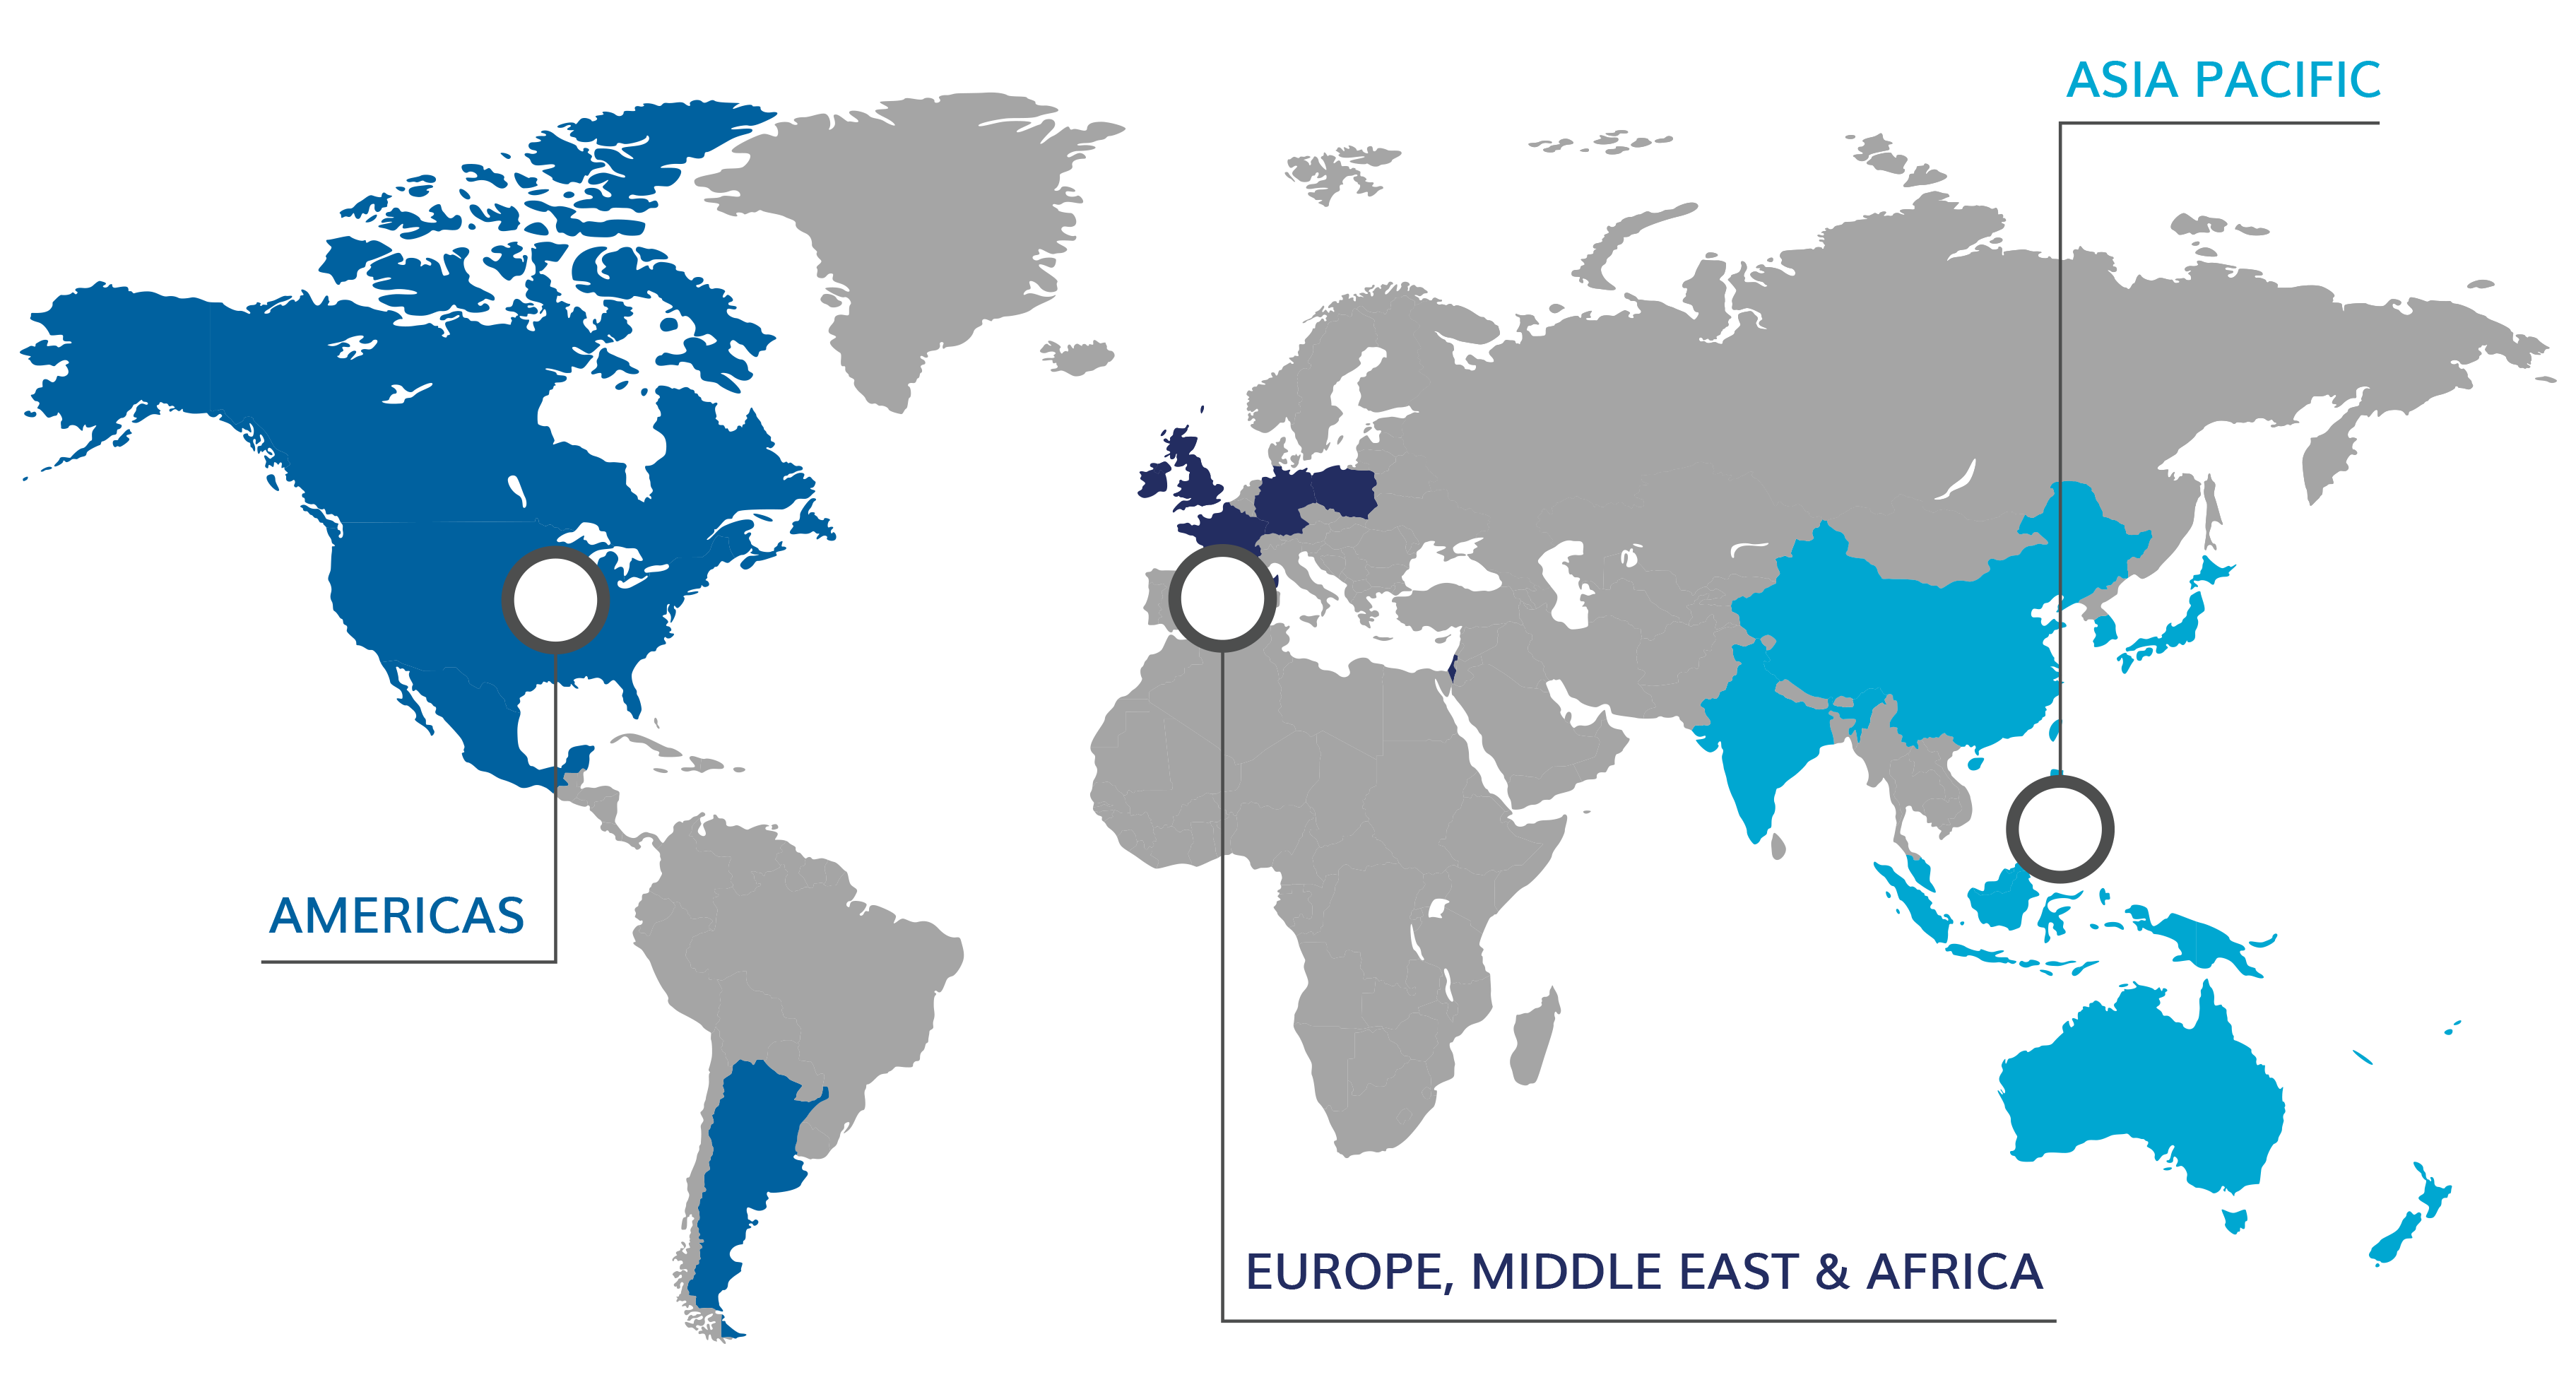 Wesco Aircraft locations across the globe